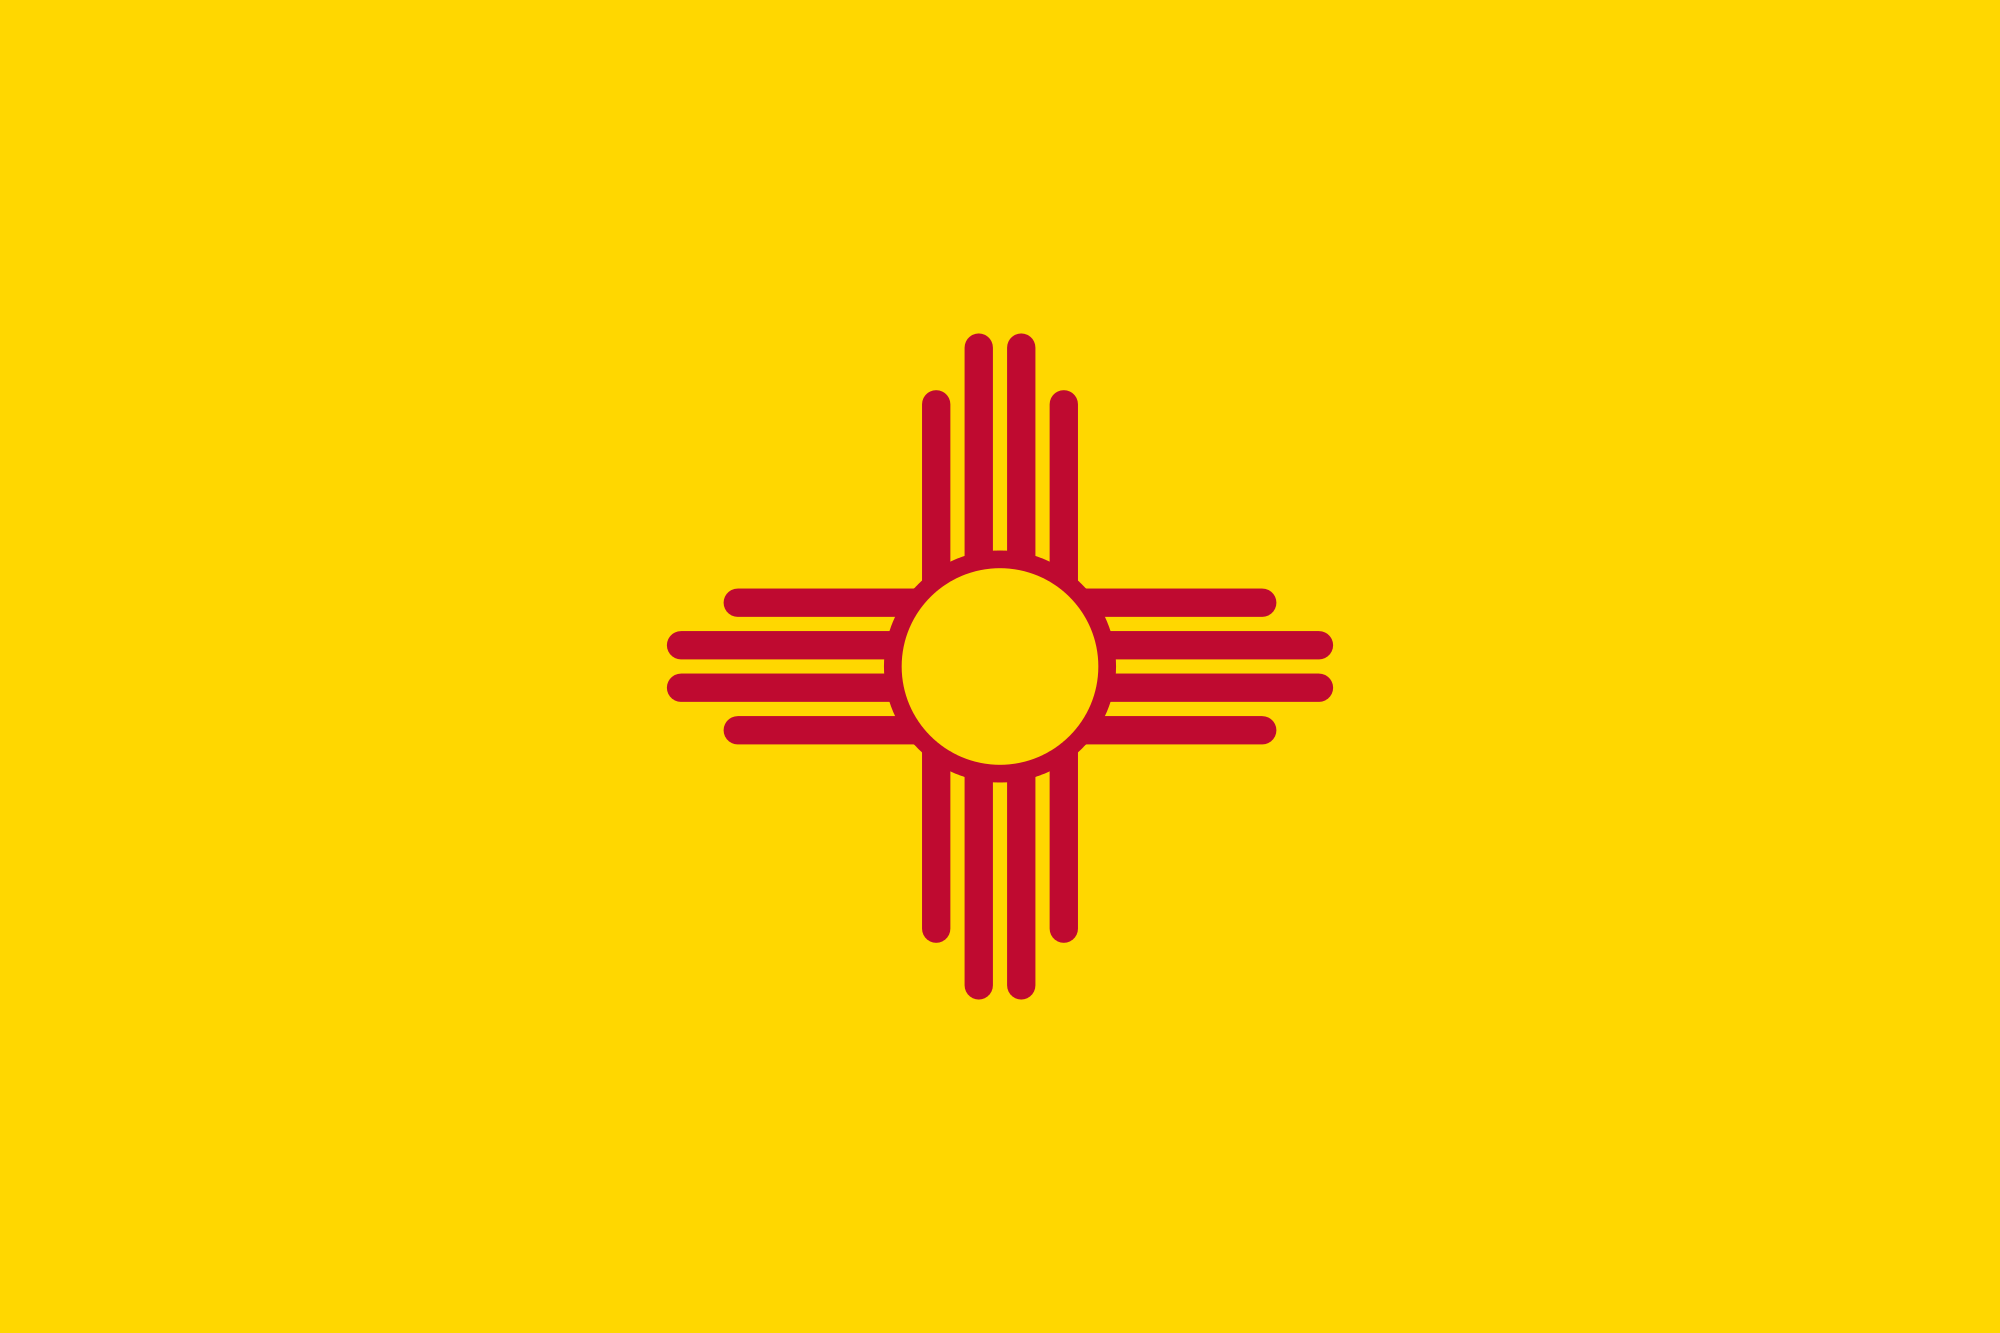 Flag of New Mexico - Wikipedia